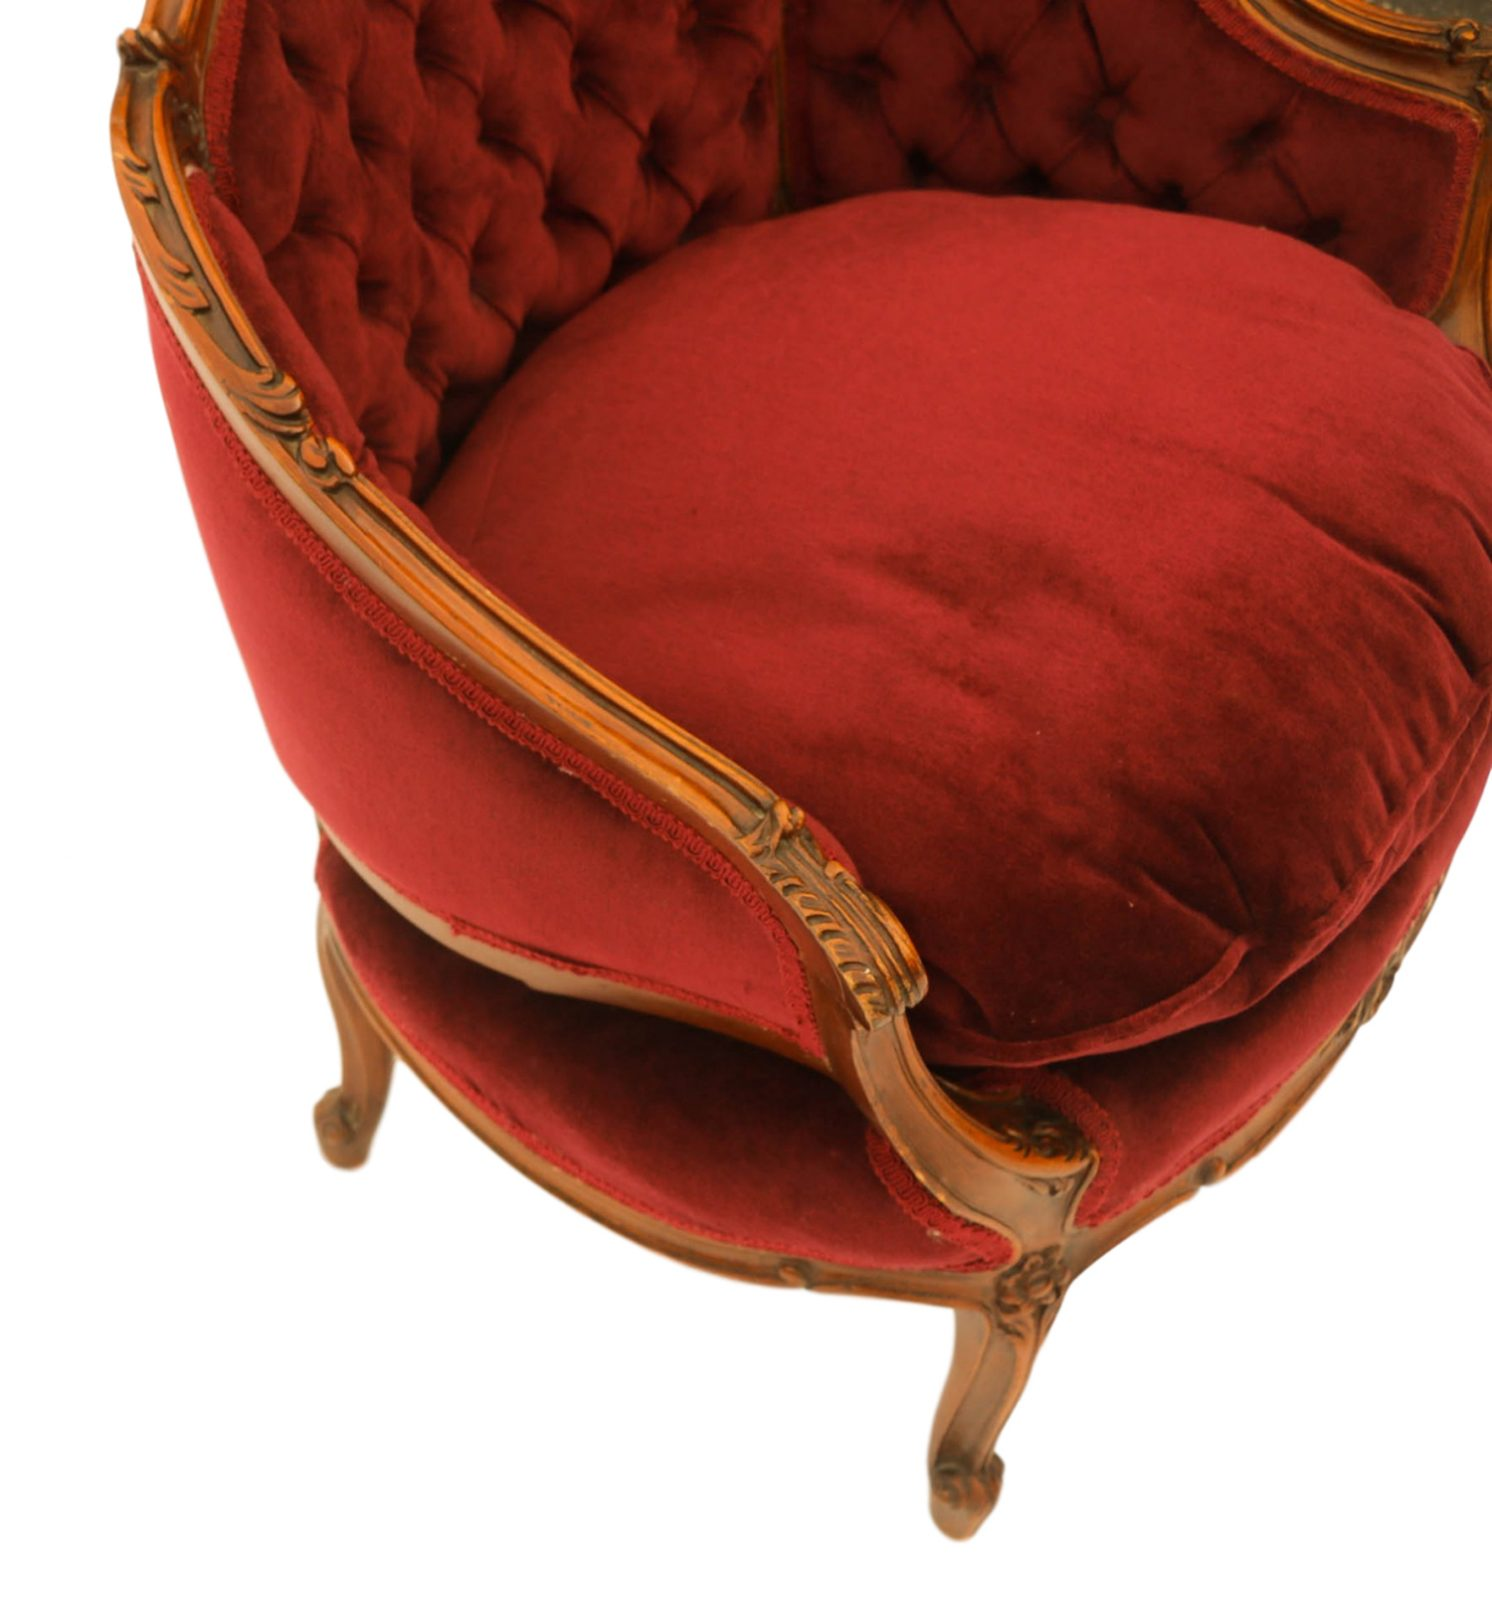 French Louis Xv Style Carved Walnut Upholstered Arm Chair